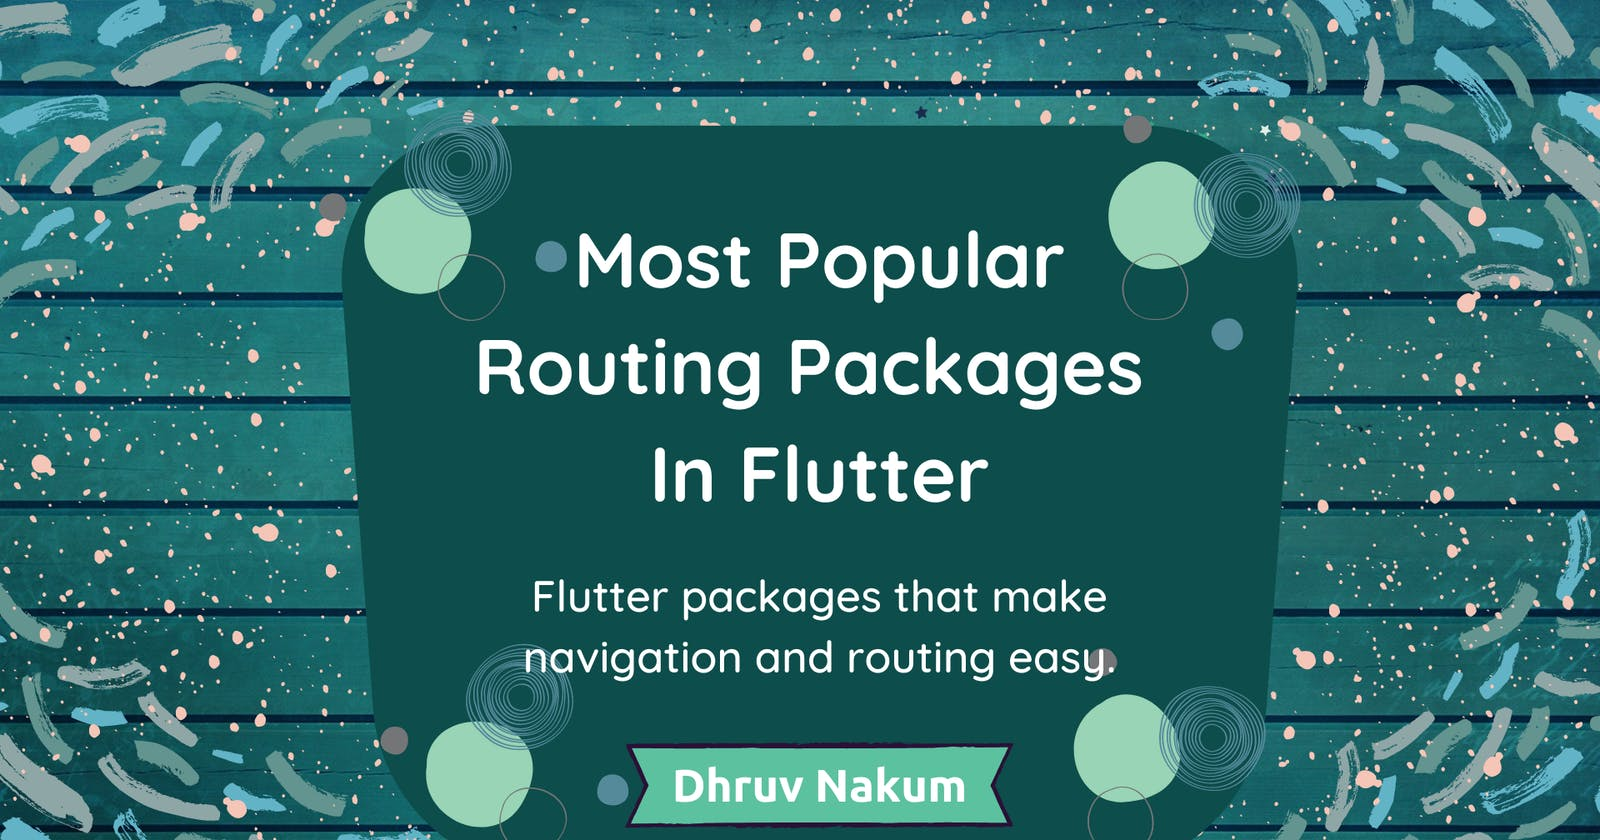 Most Popular Routing Packages In Flutter